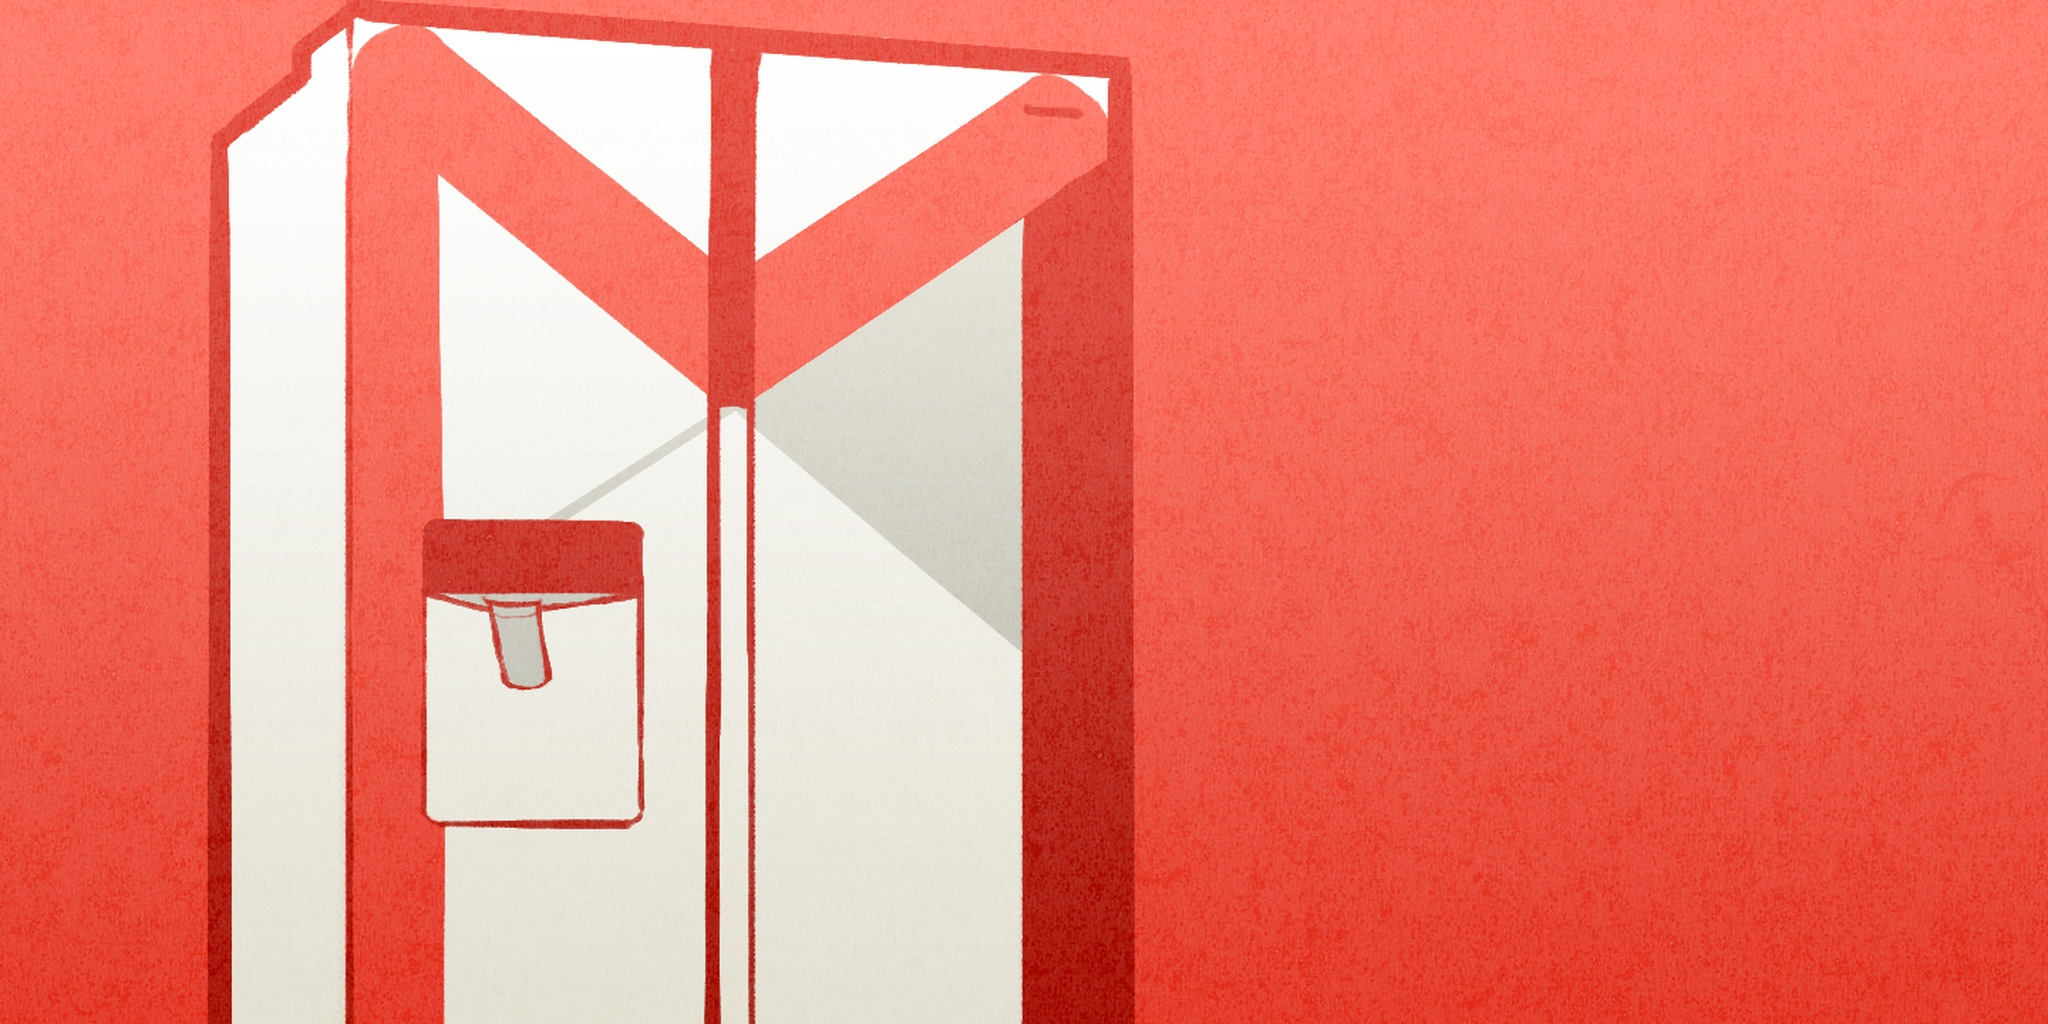 illustration of a fridge that looks like the gmail logo